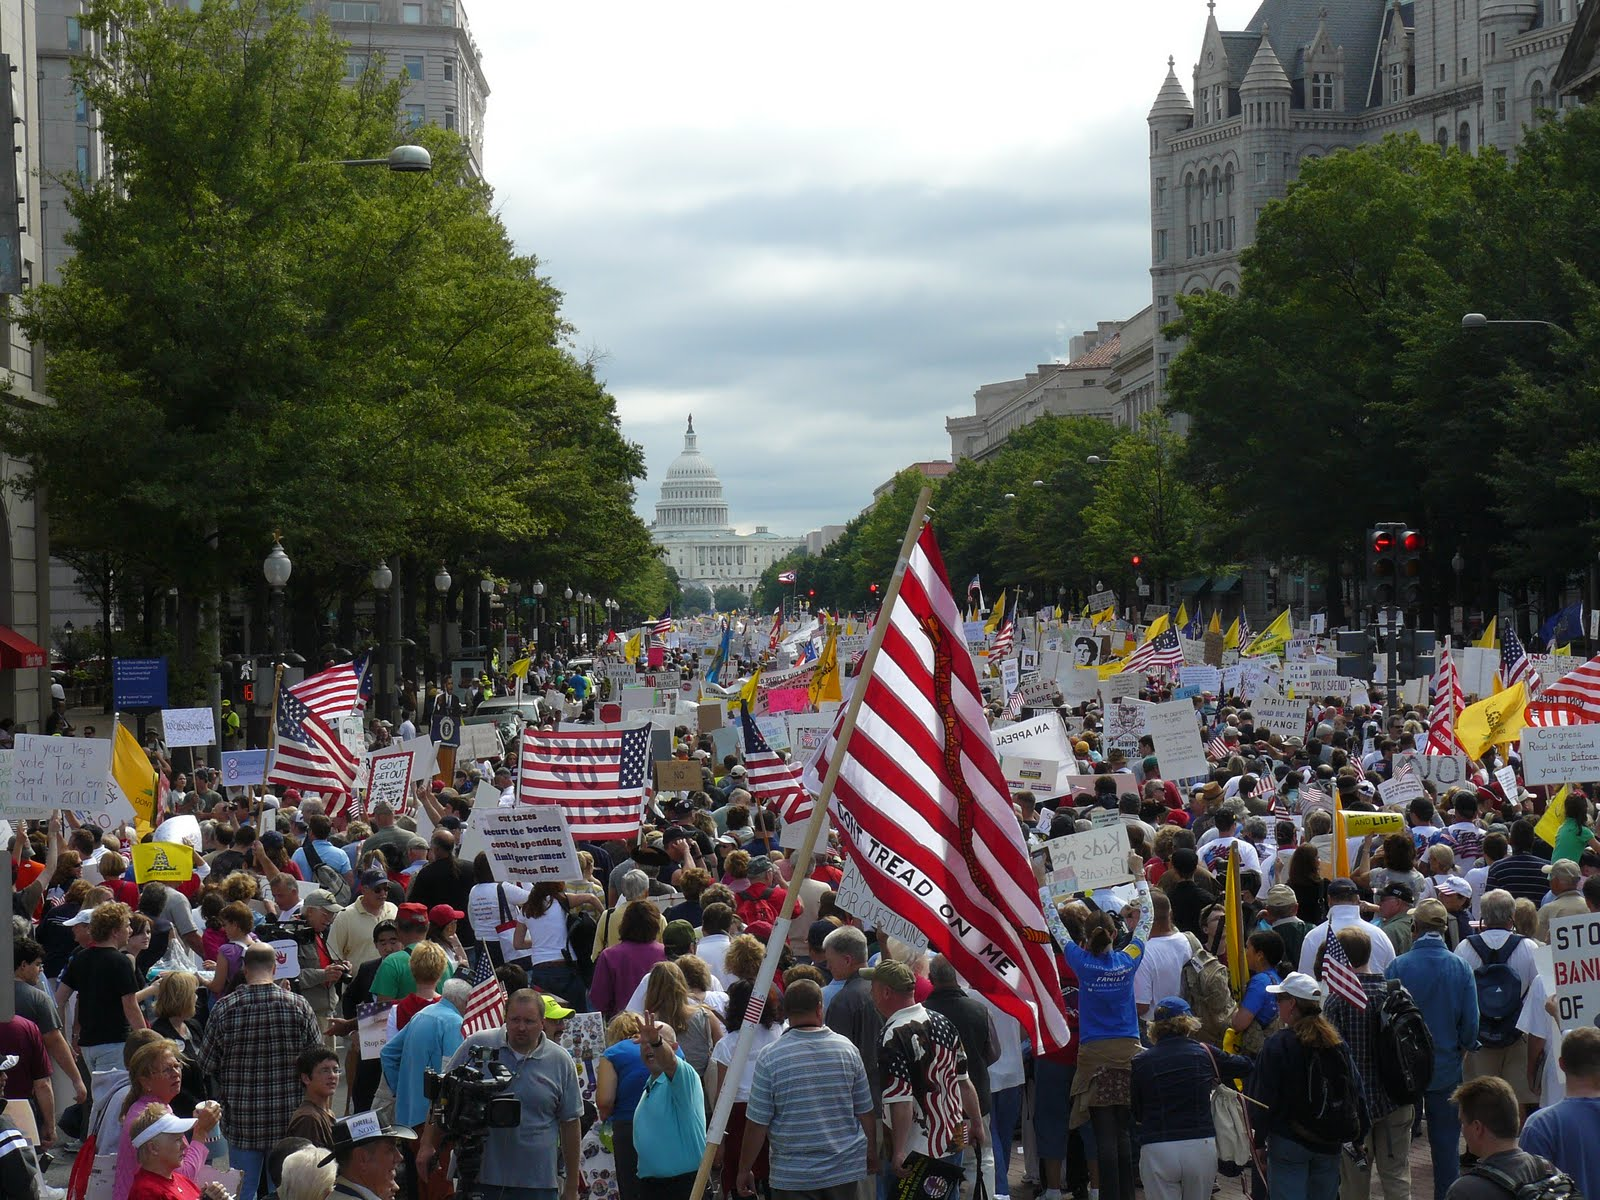 Tea Party Protest, Washington D.C. September 12, 2009